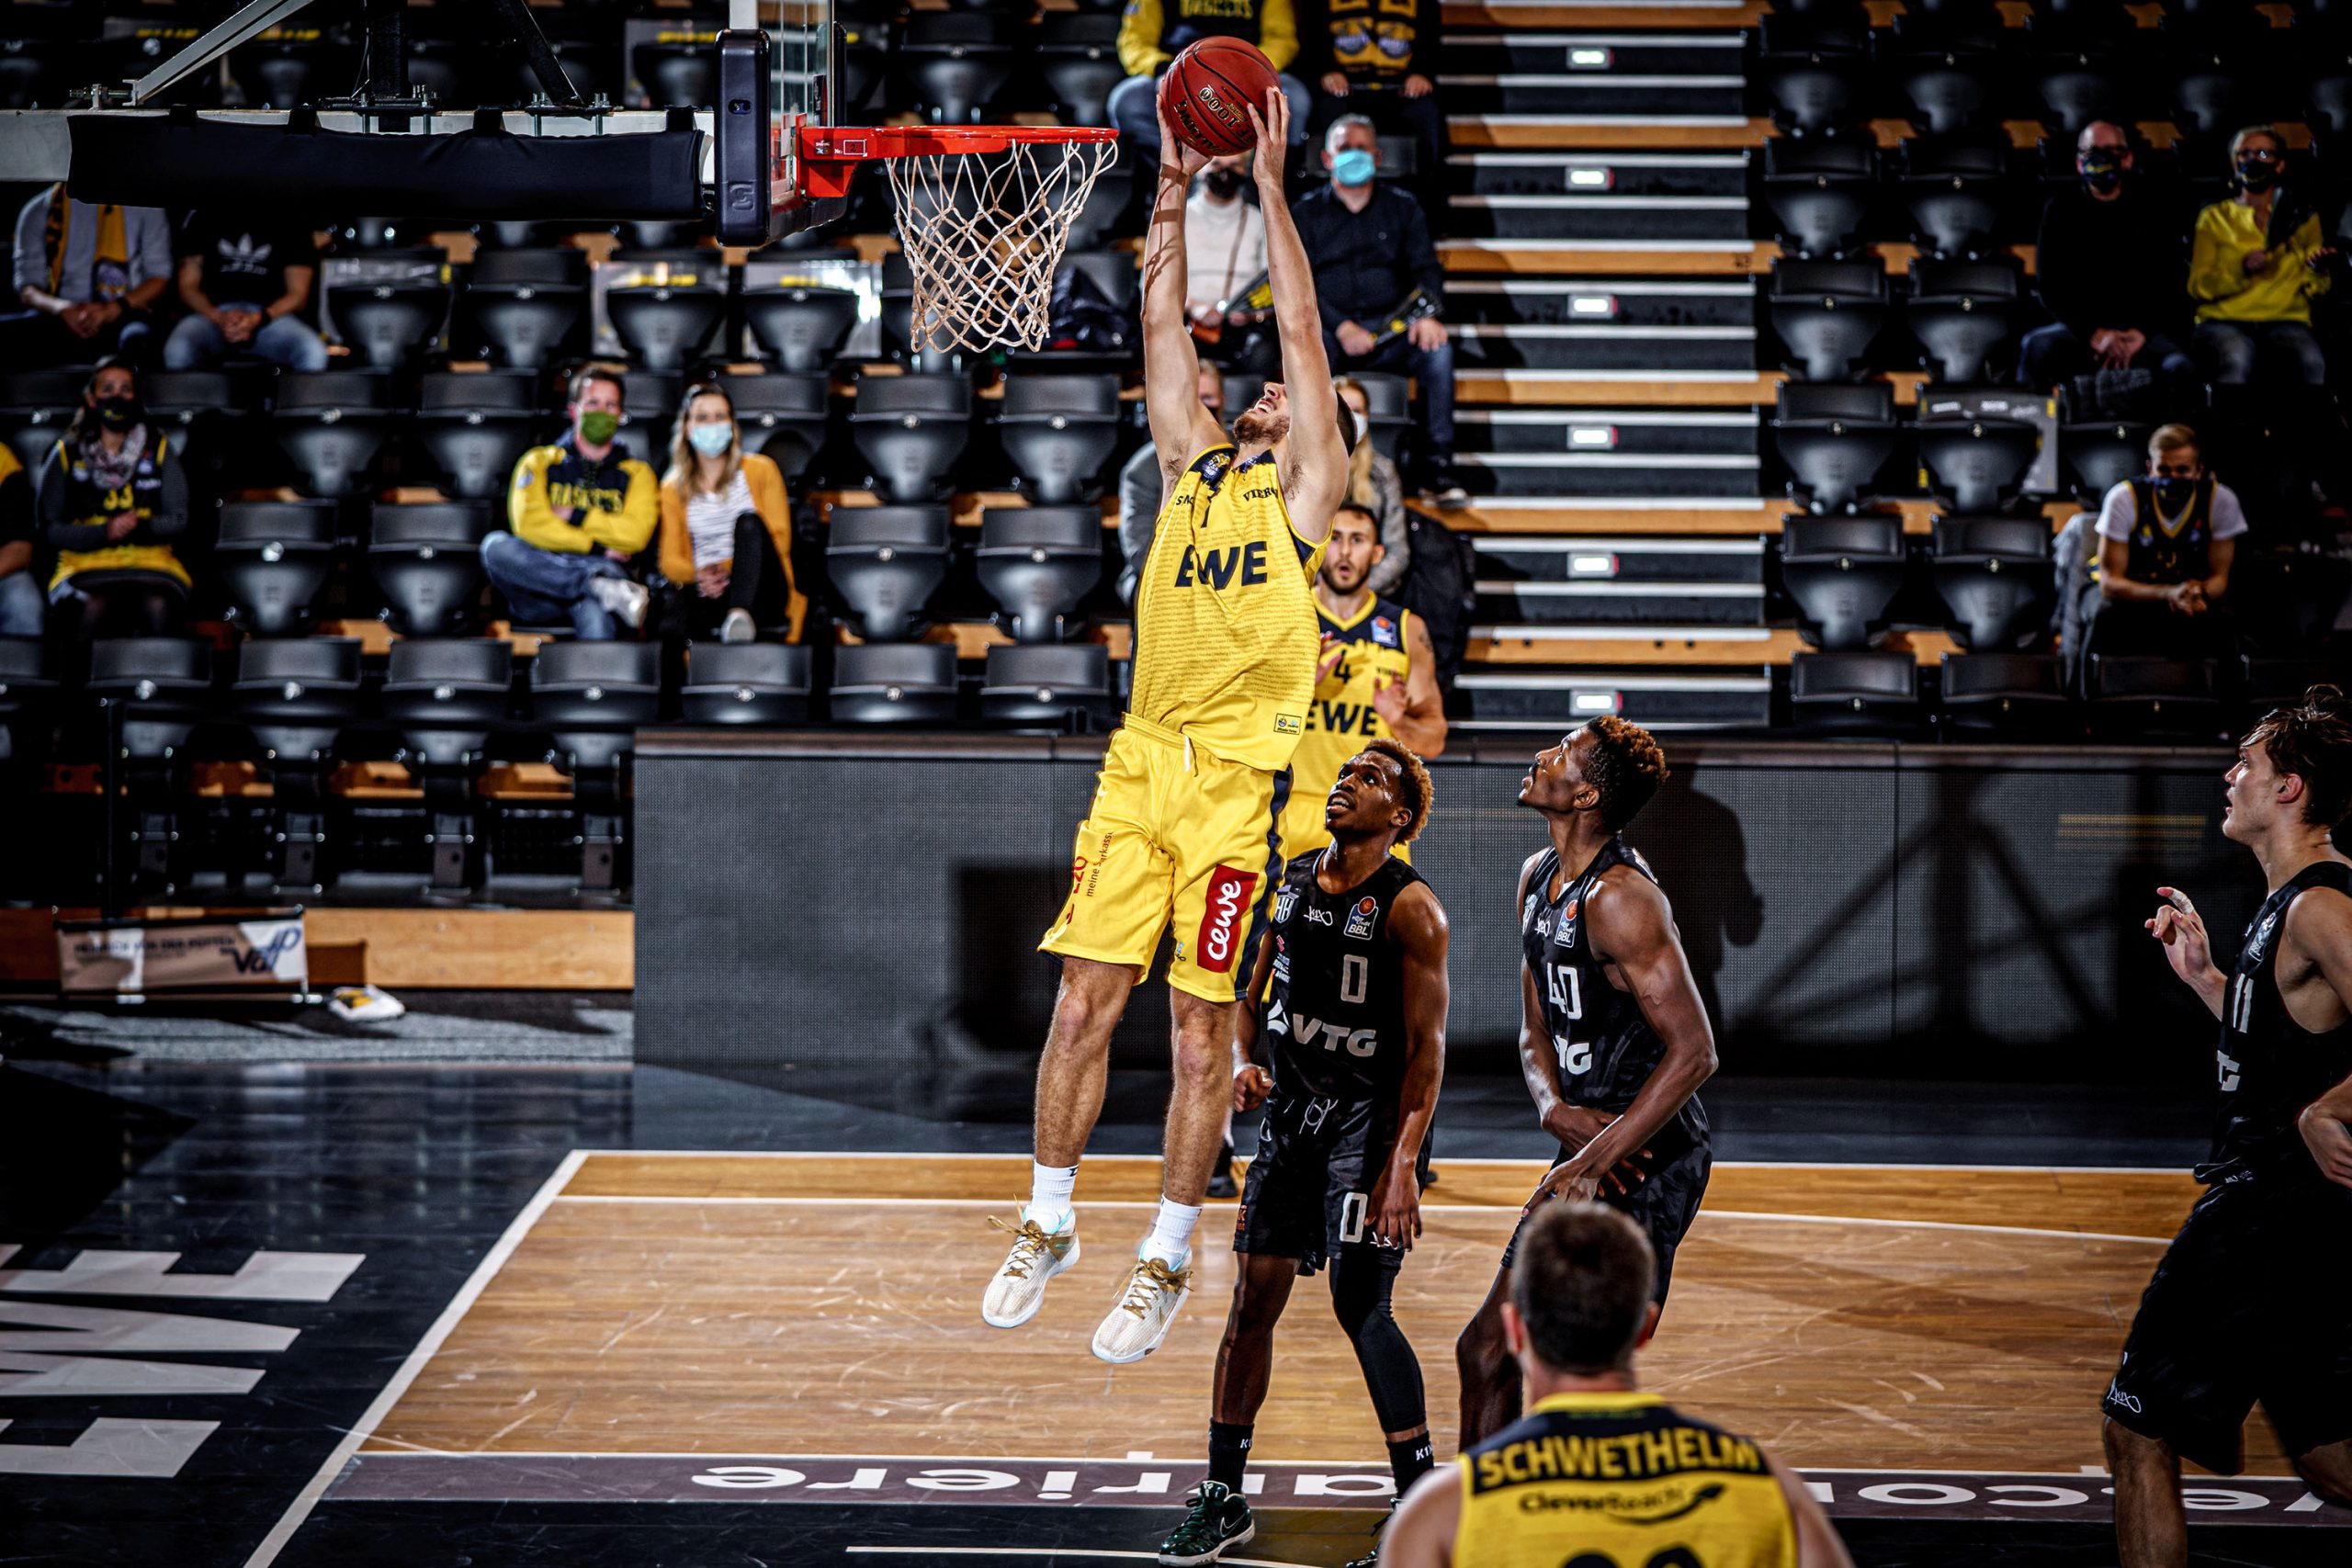 Crédito: EWE Baskets Oldenburg